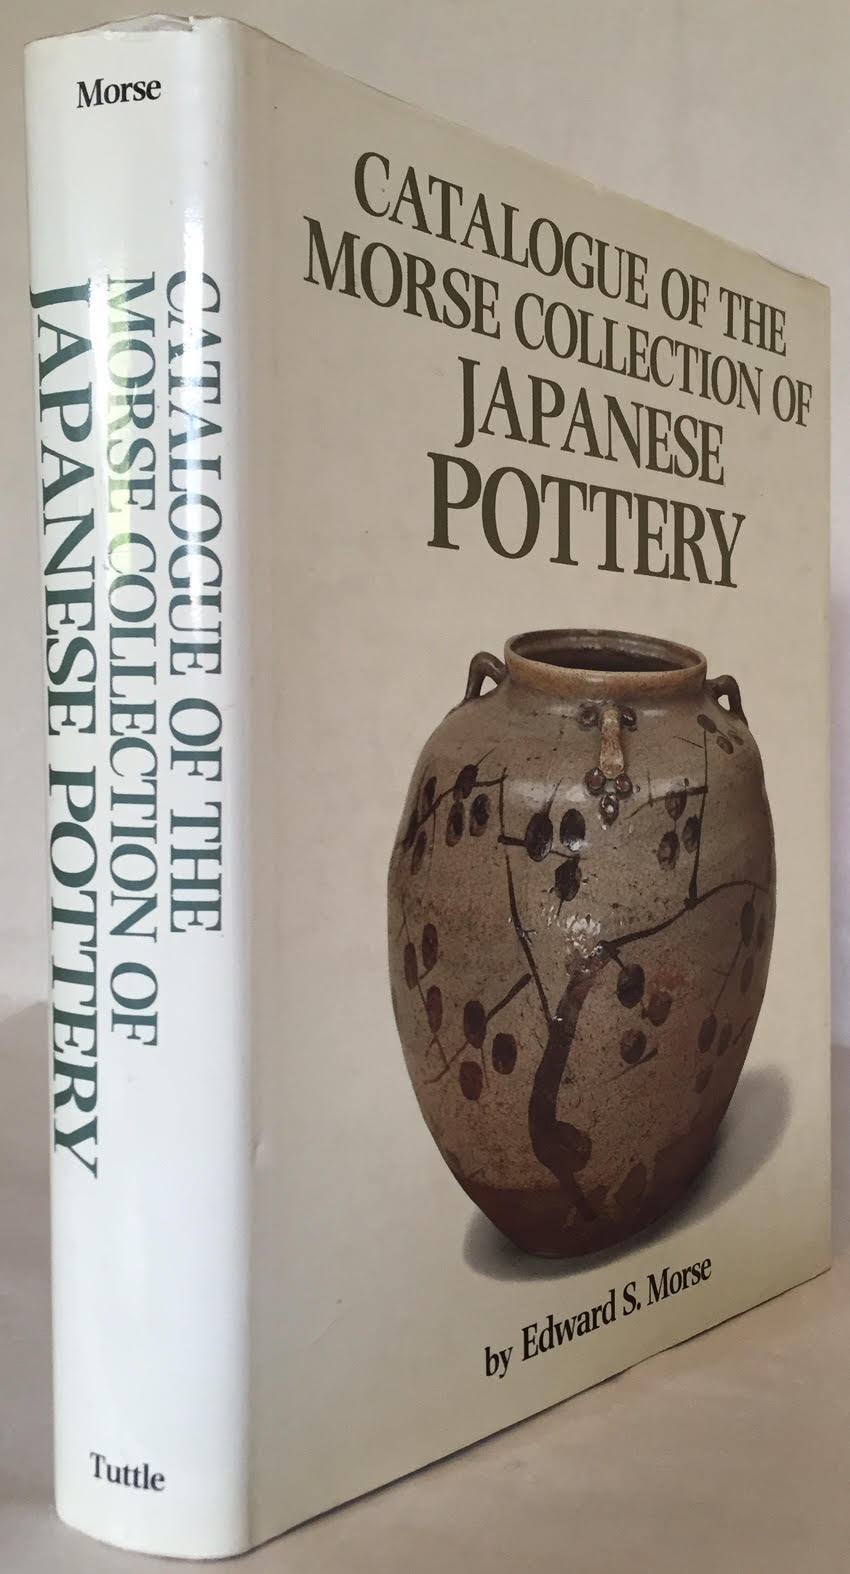 Image for Catalogue of the Morse Collection of Japanese Pottery